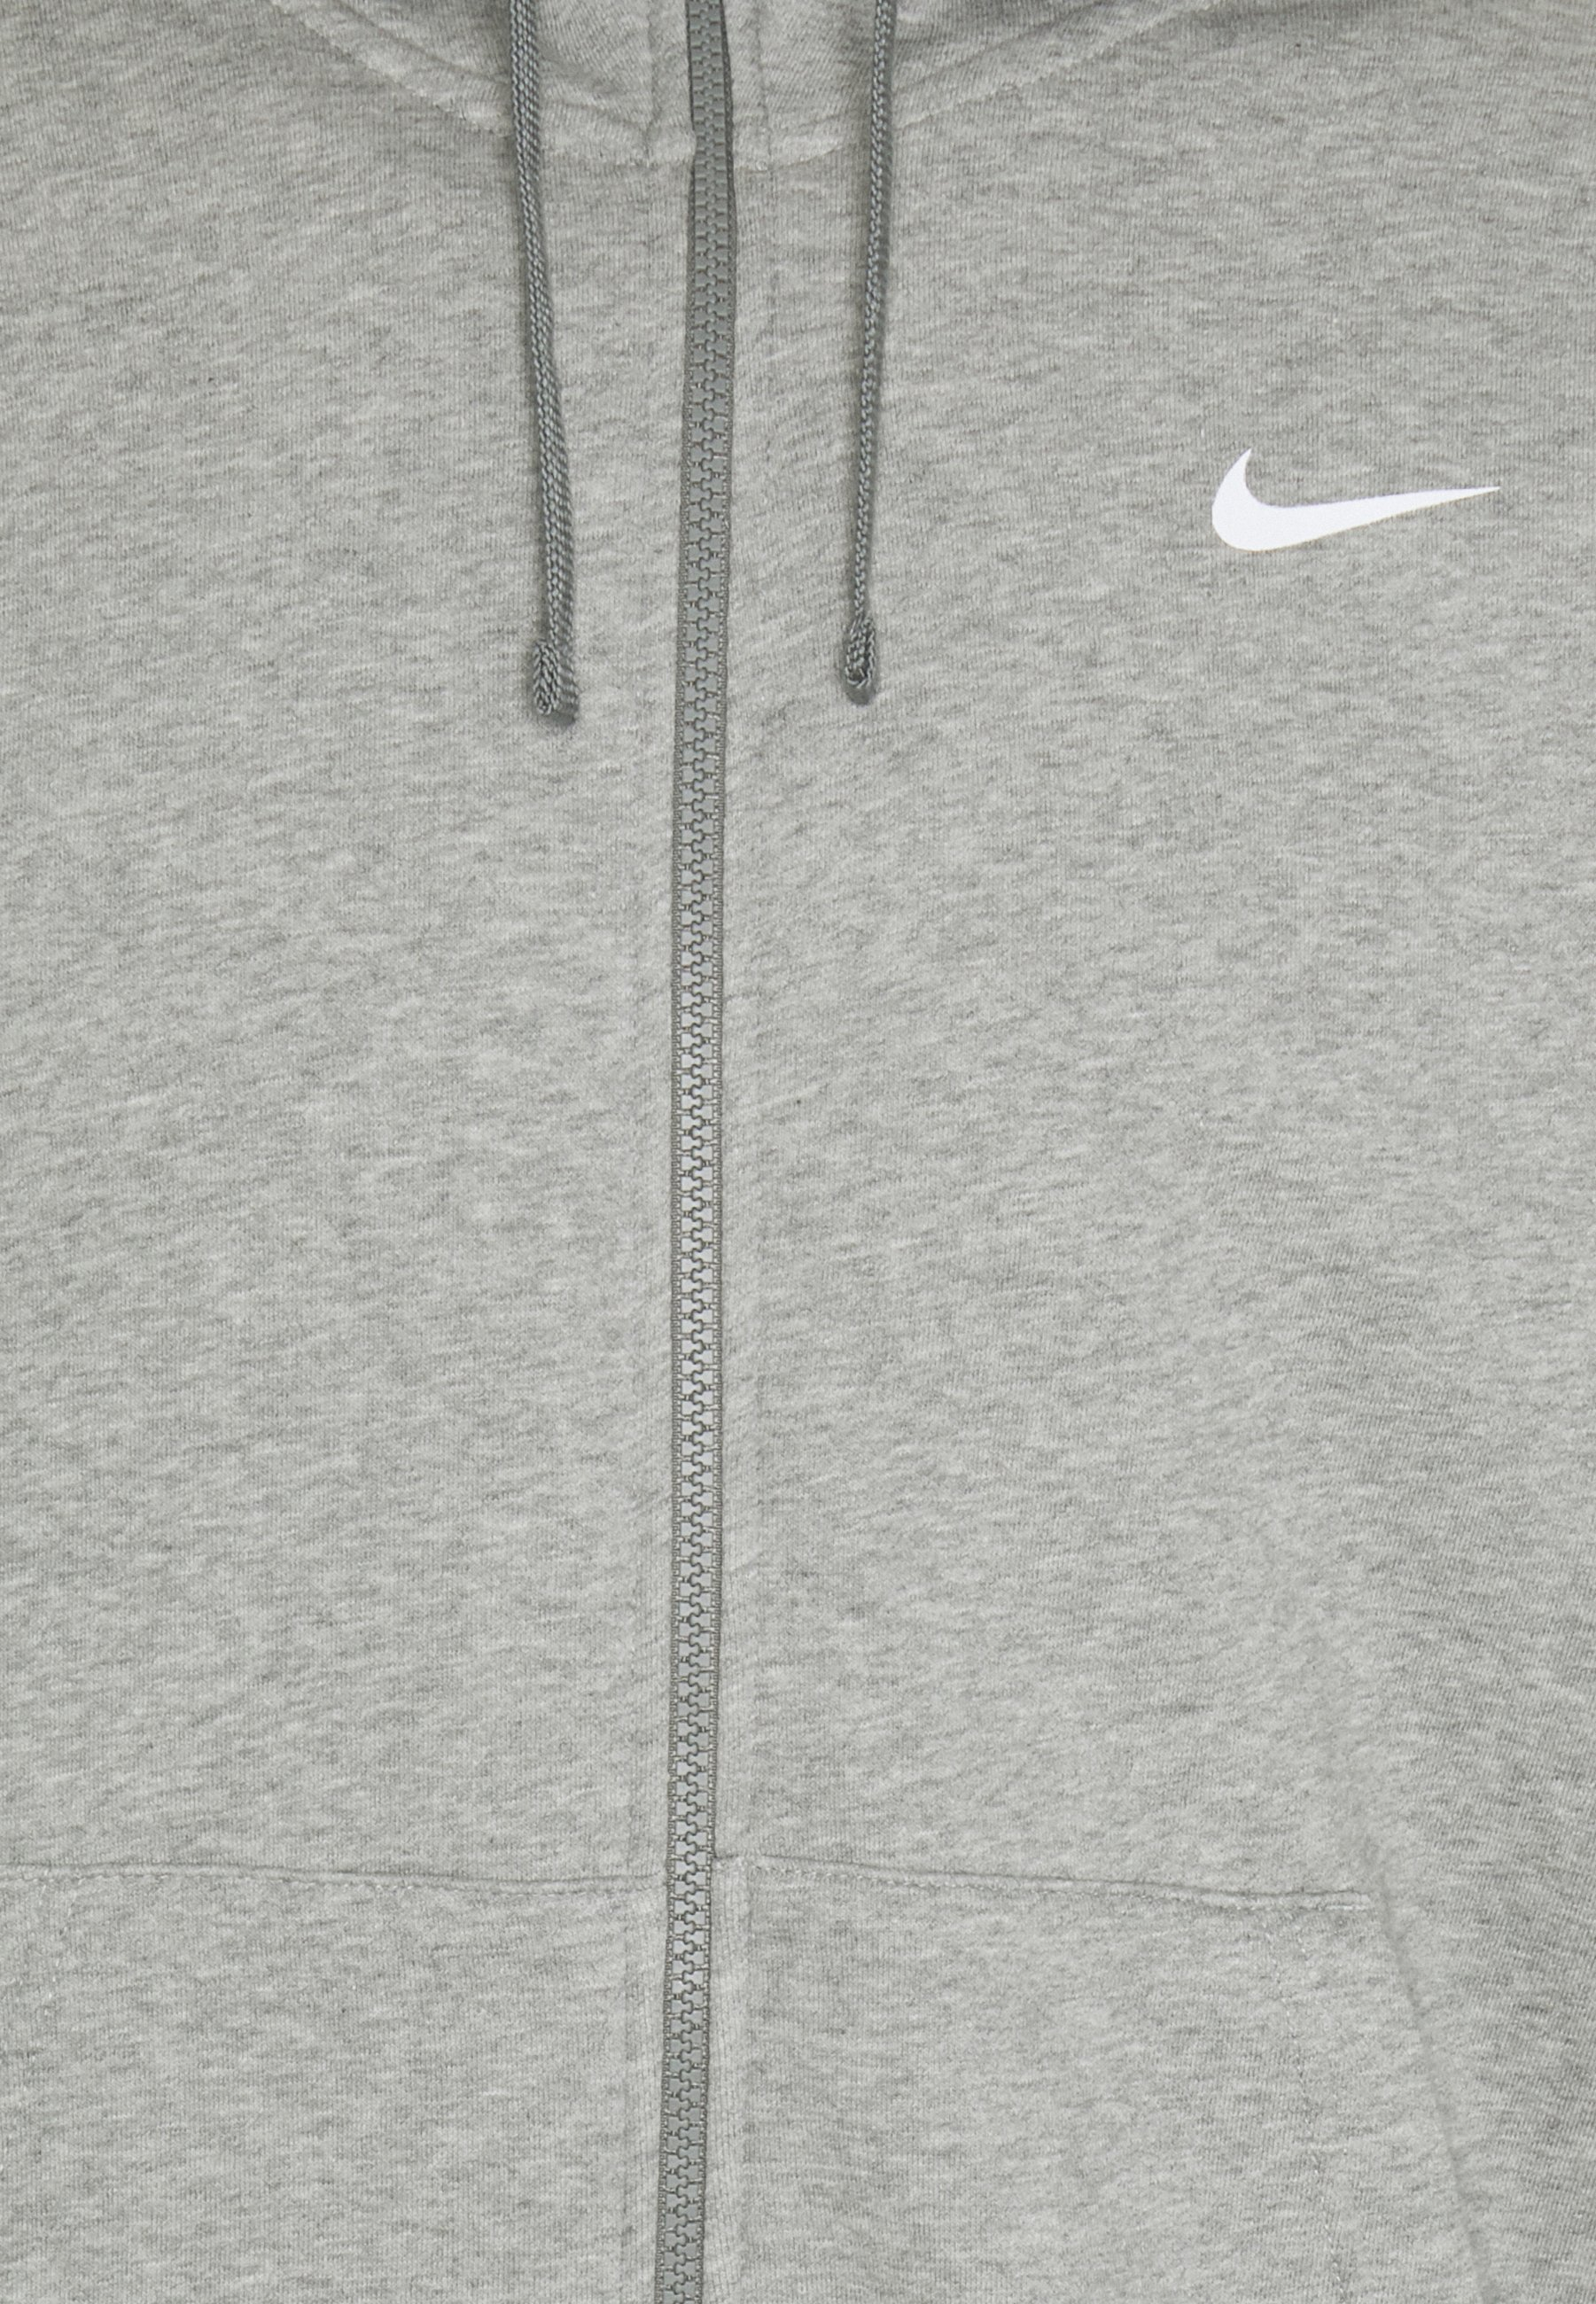 Nike Sportswear Repeat Hoodie - Hettejakke Dark Grey Heather/white/mørkegrå-melert